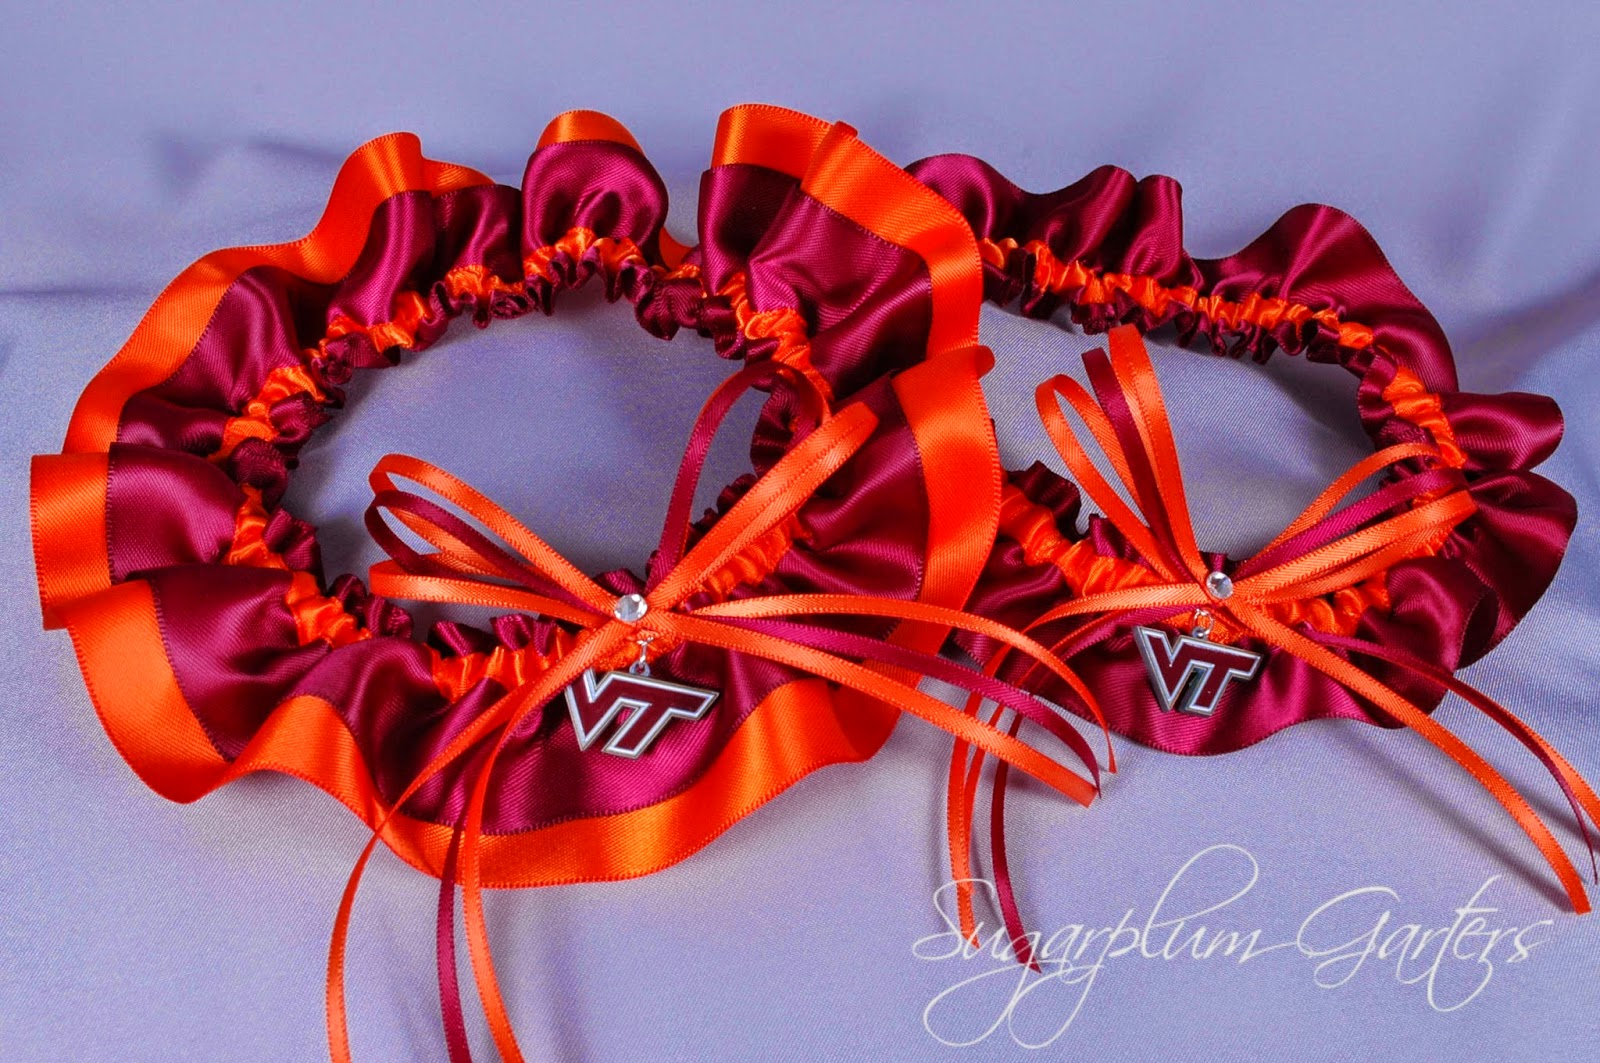 Virginia Tech Hokies Wedding Garter Set by Sugarplum Garters